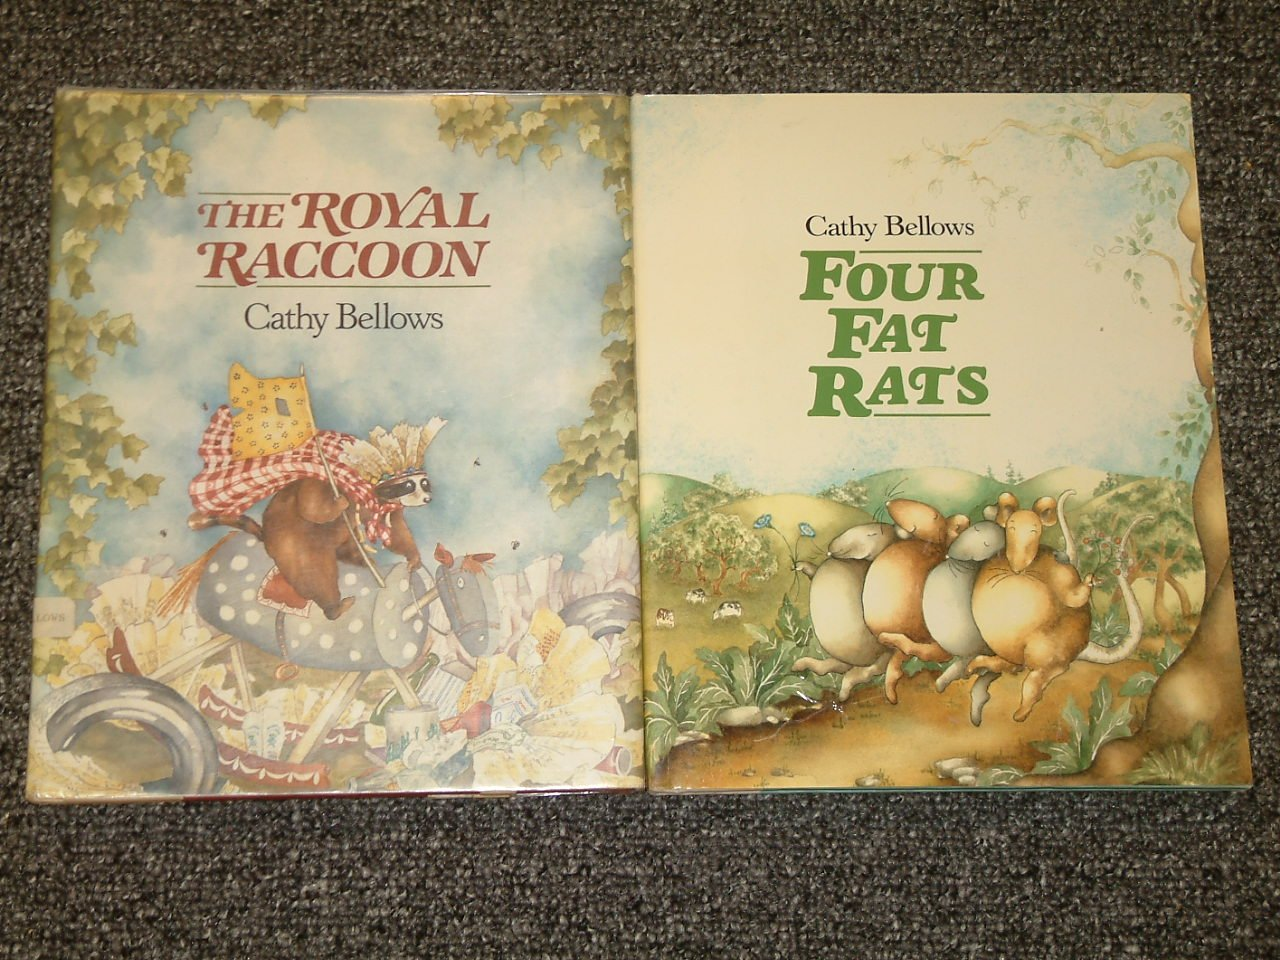 The Royal Raccoon and Four Fat Rats by Cathy Bellows